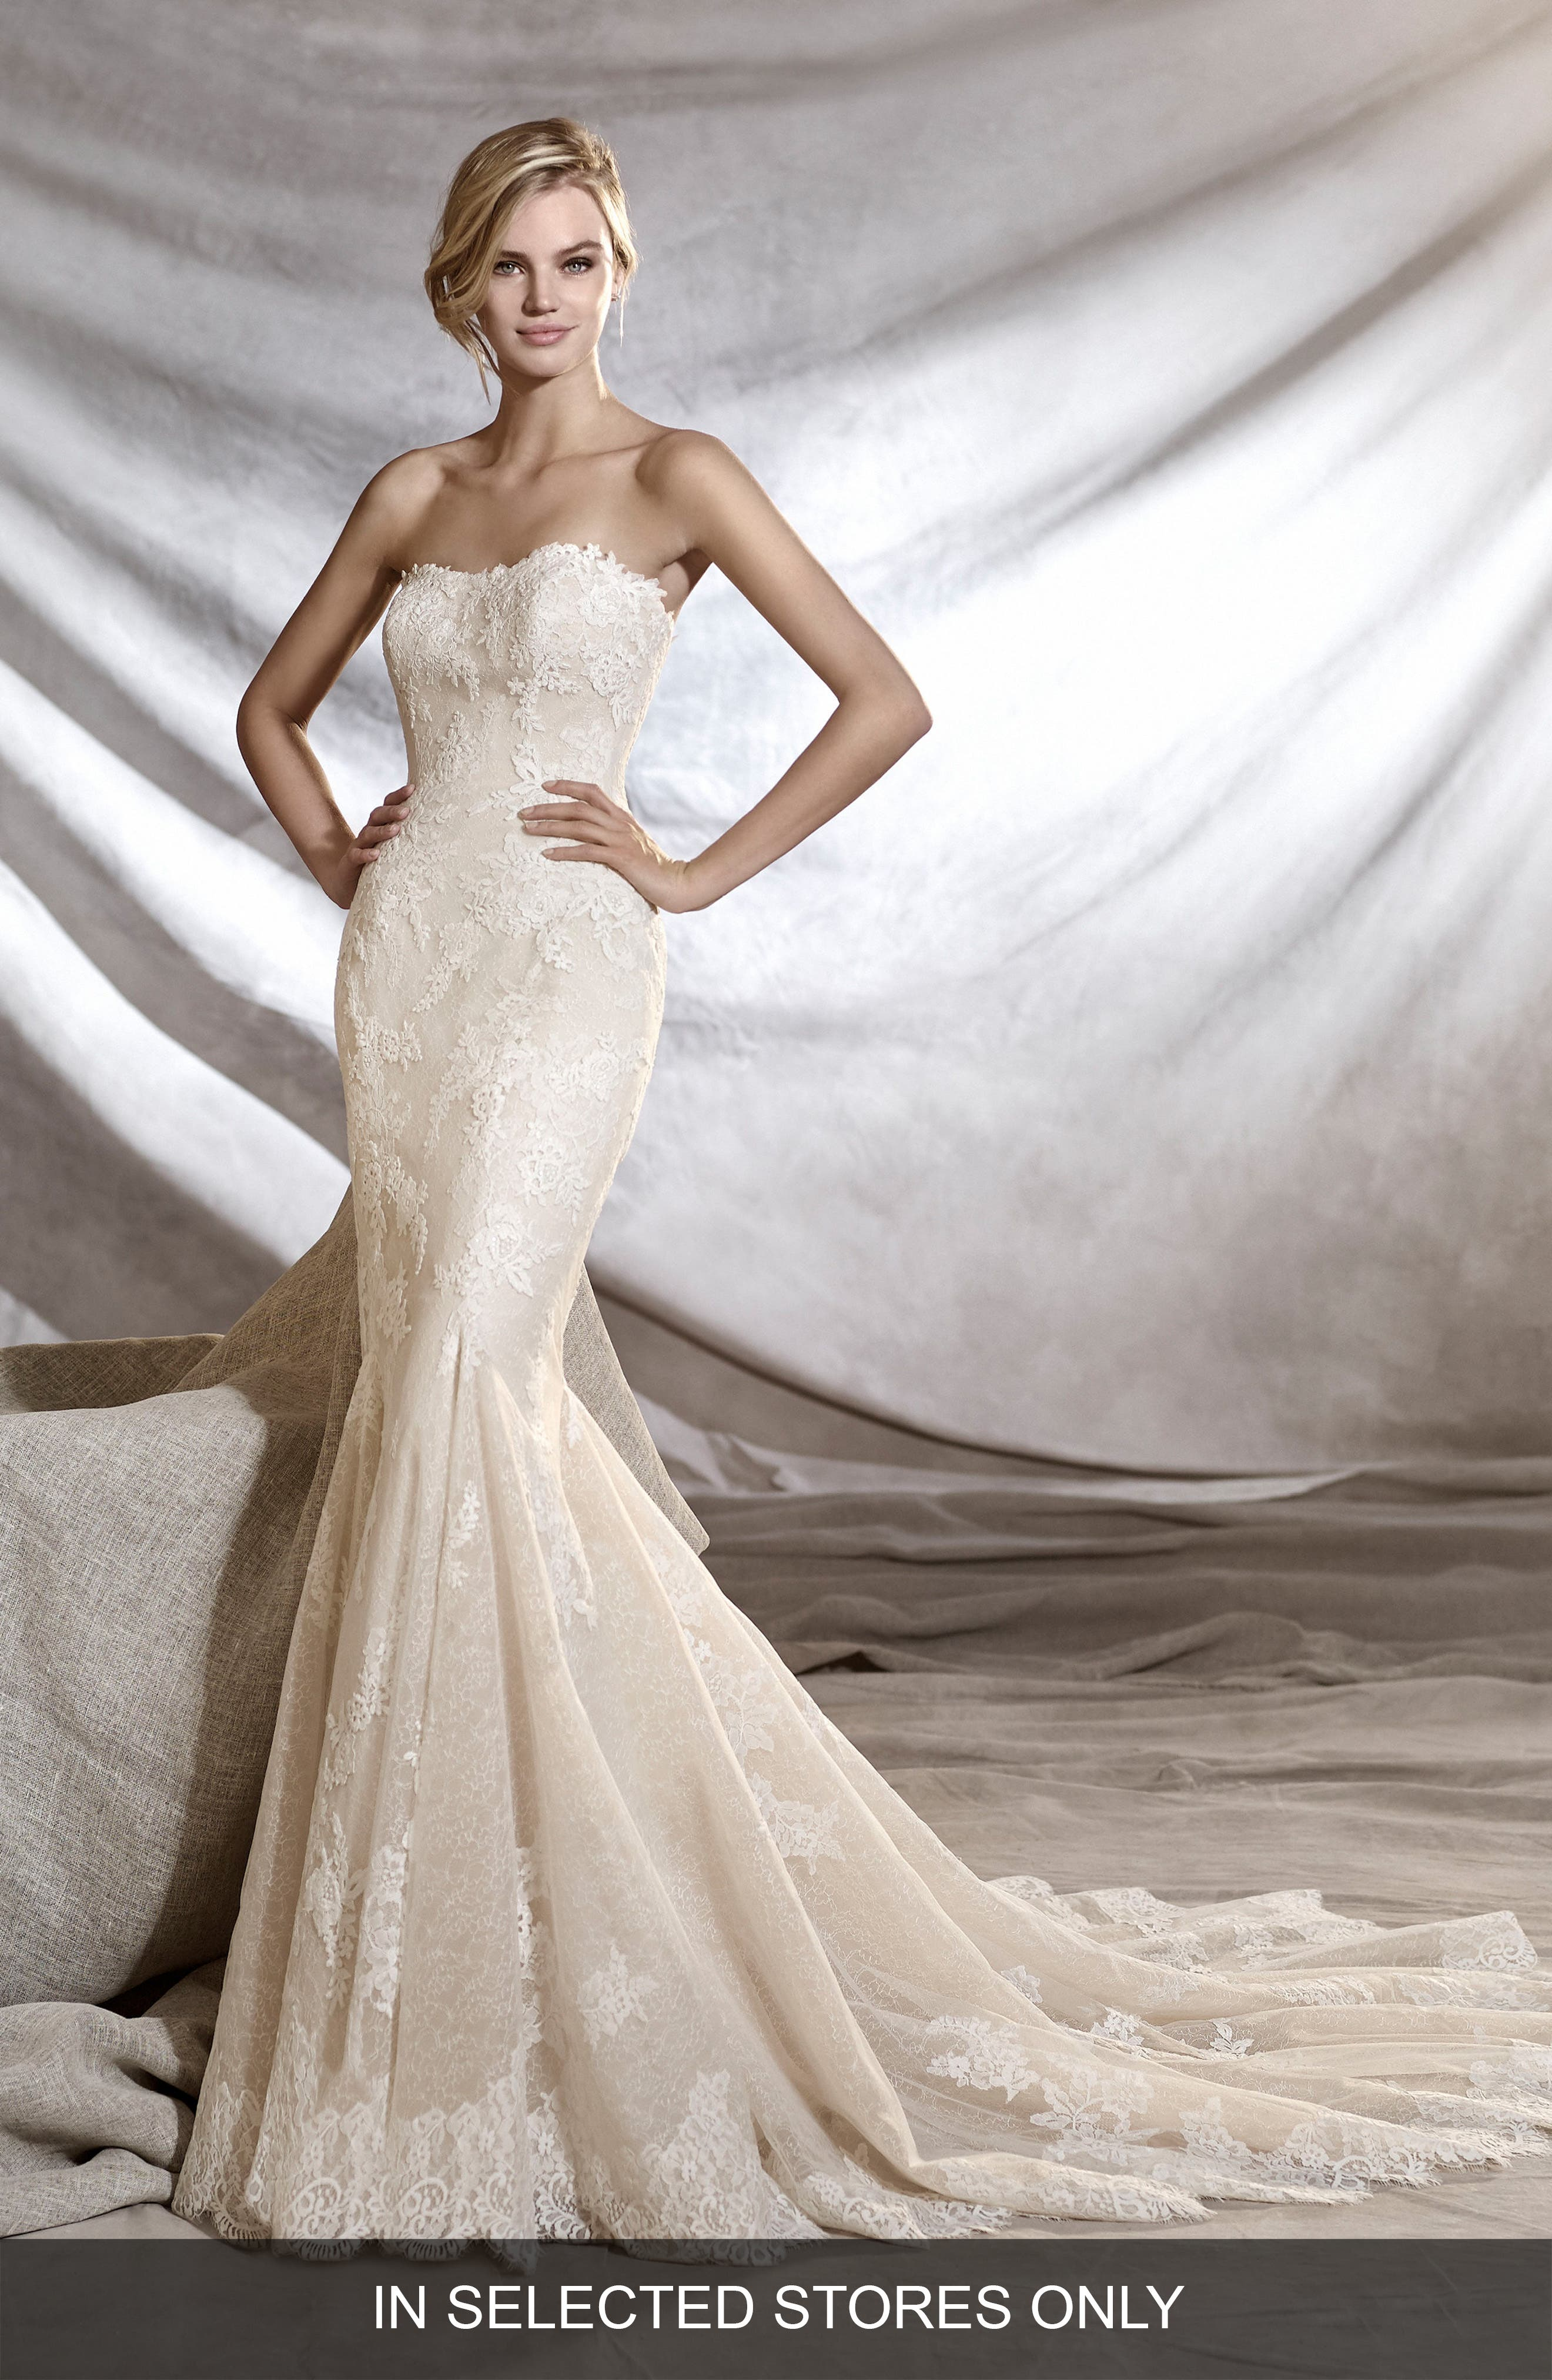 Orinoco Strapless Tulle & Lace Mermaid Gown,                             Main thumbnail 1, color,                             901